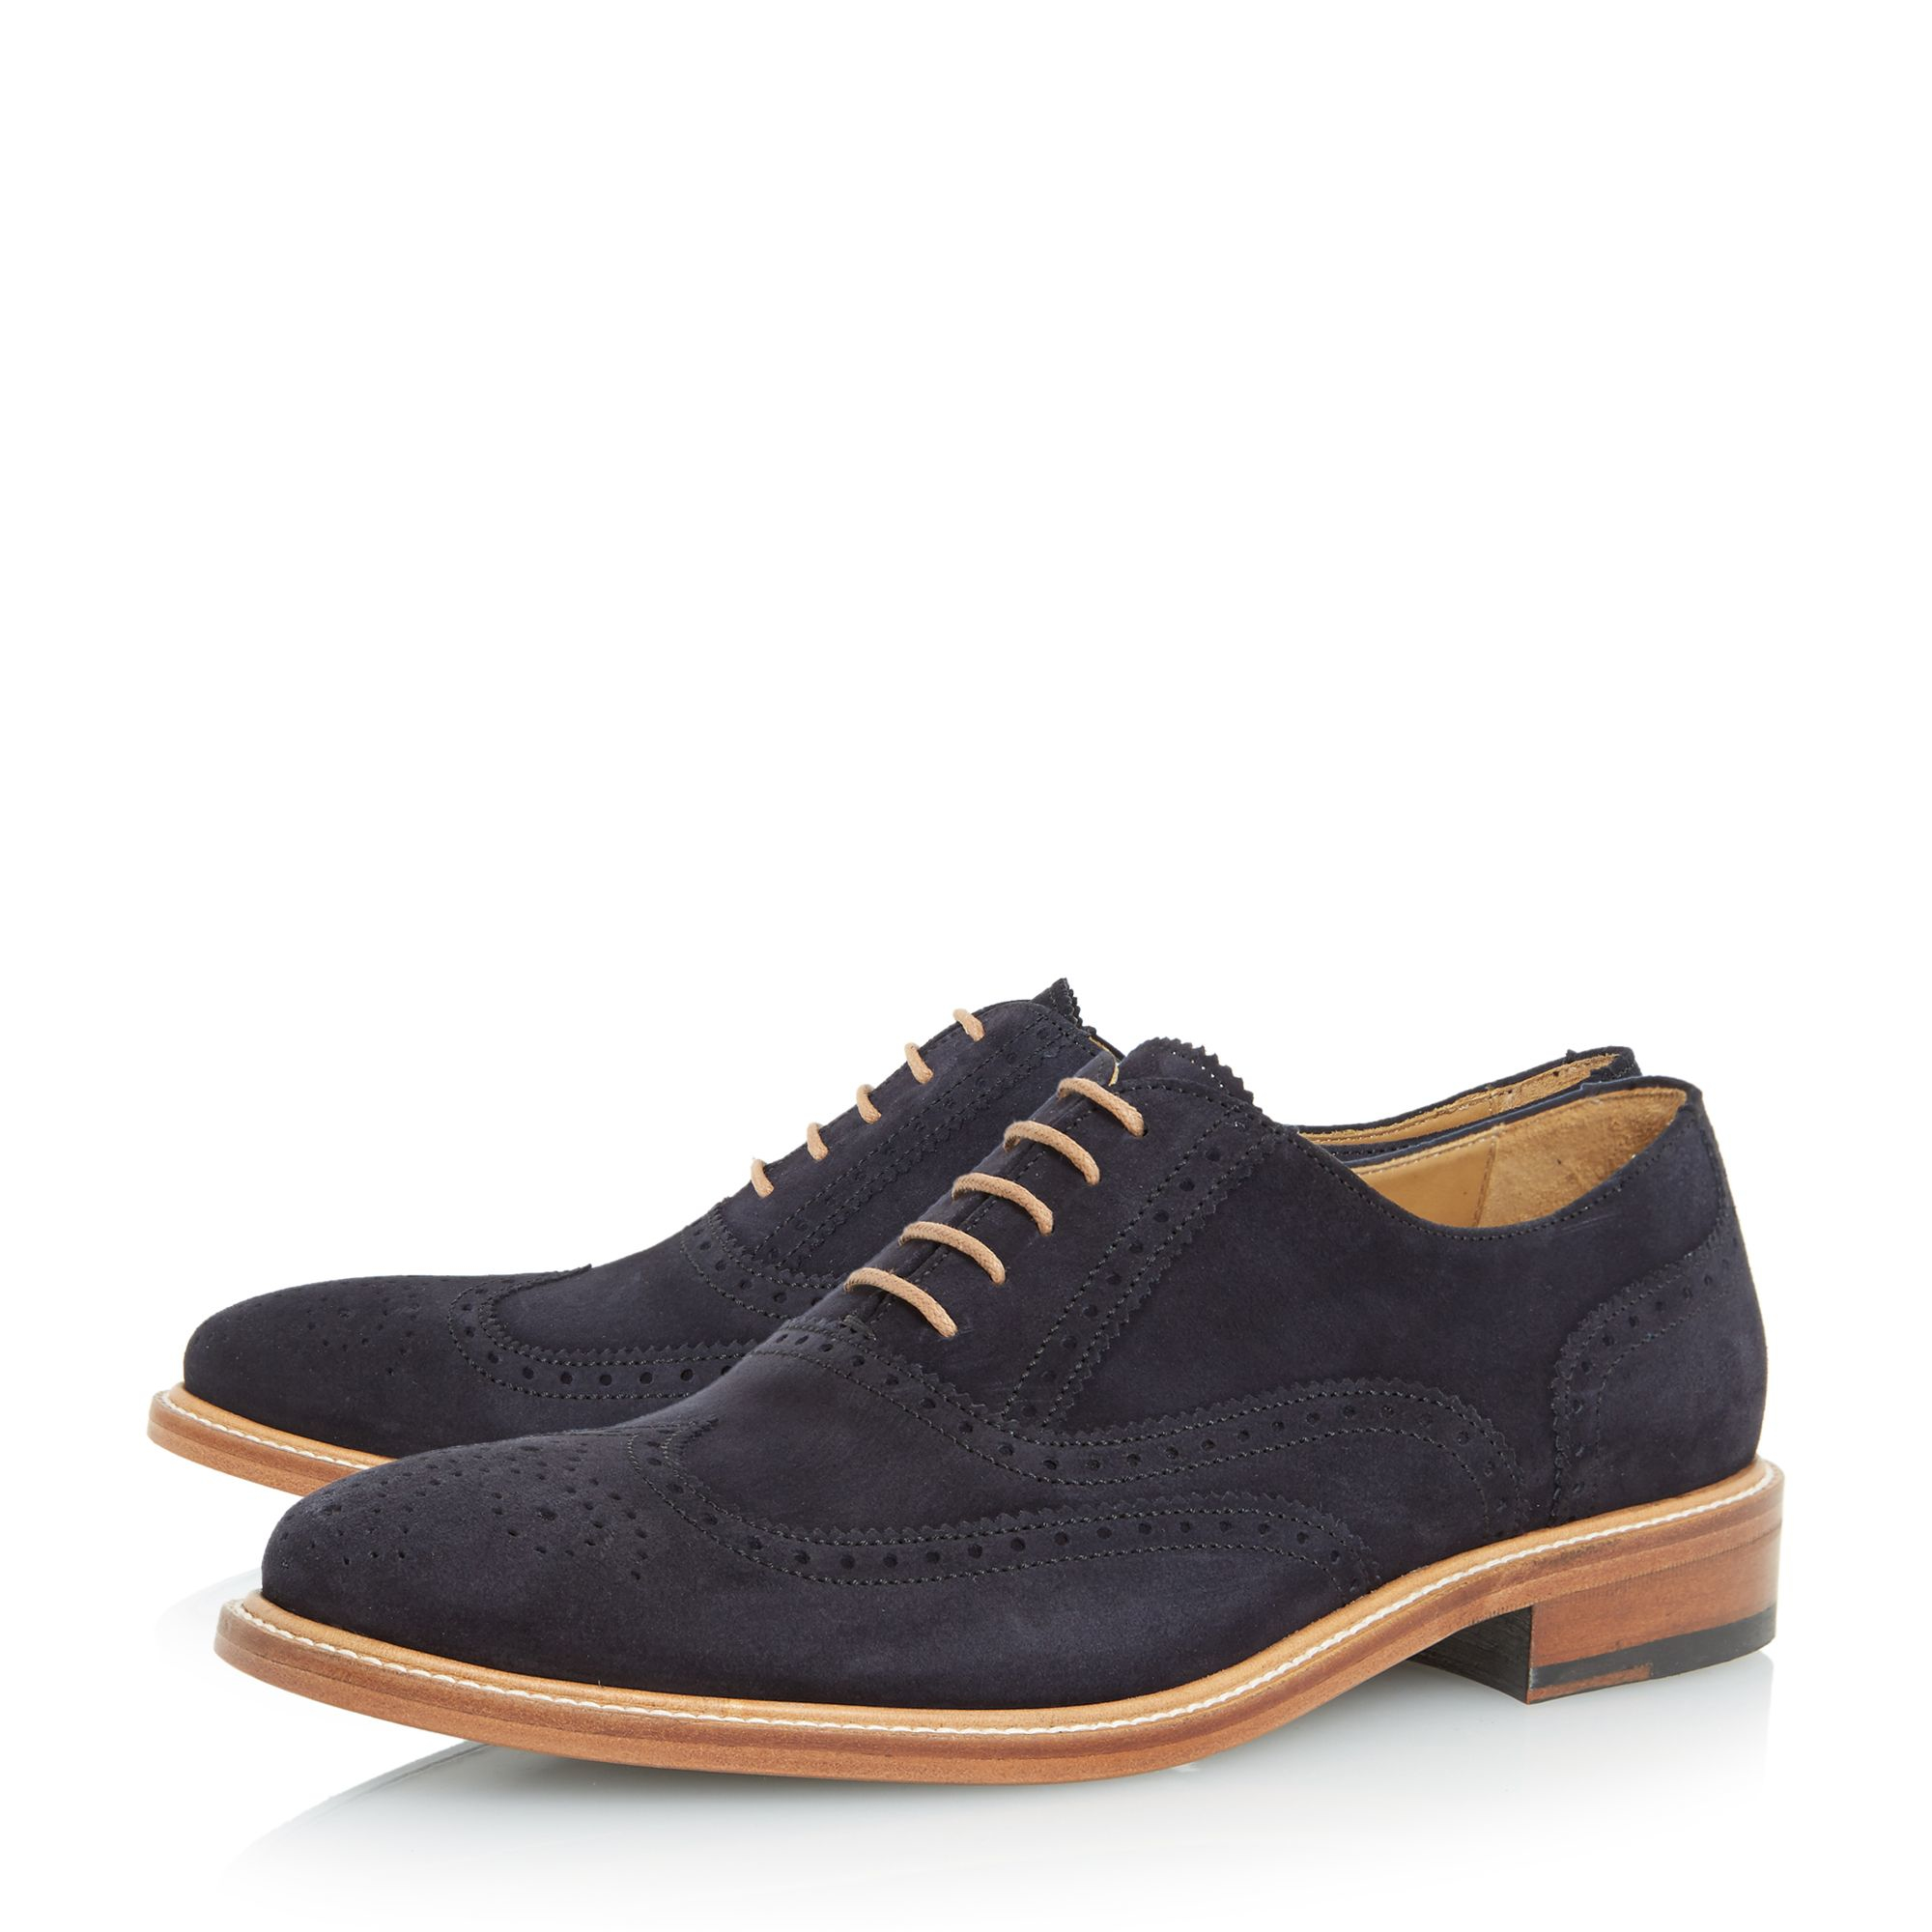 Brogues Black And White River Island